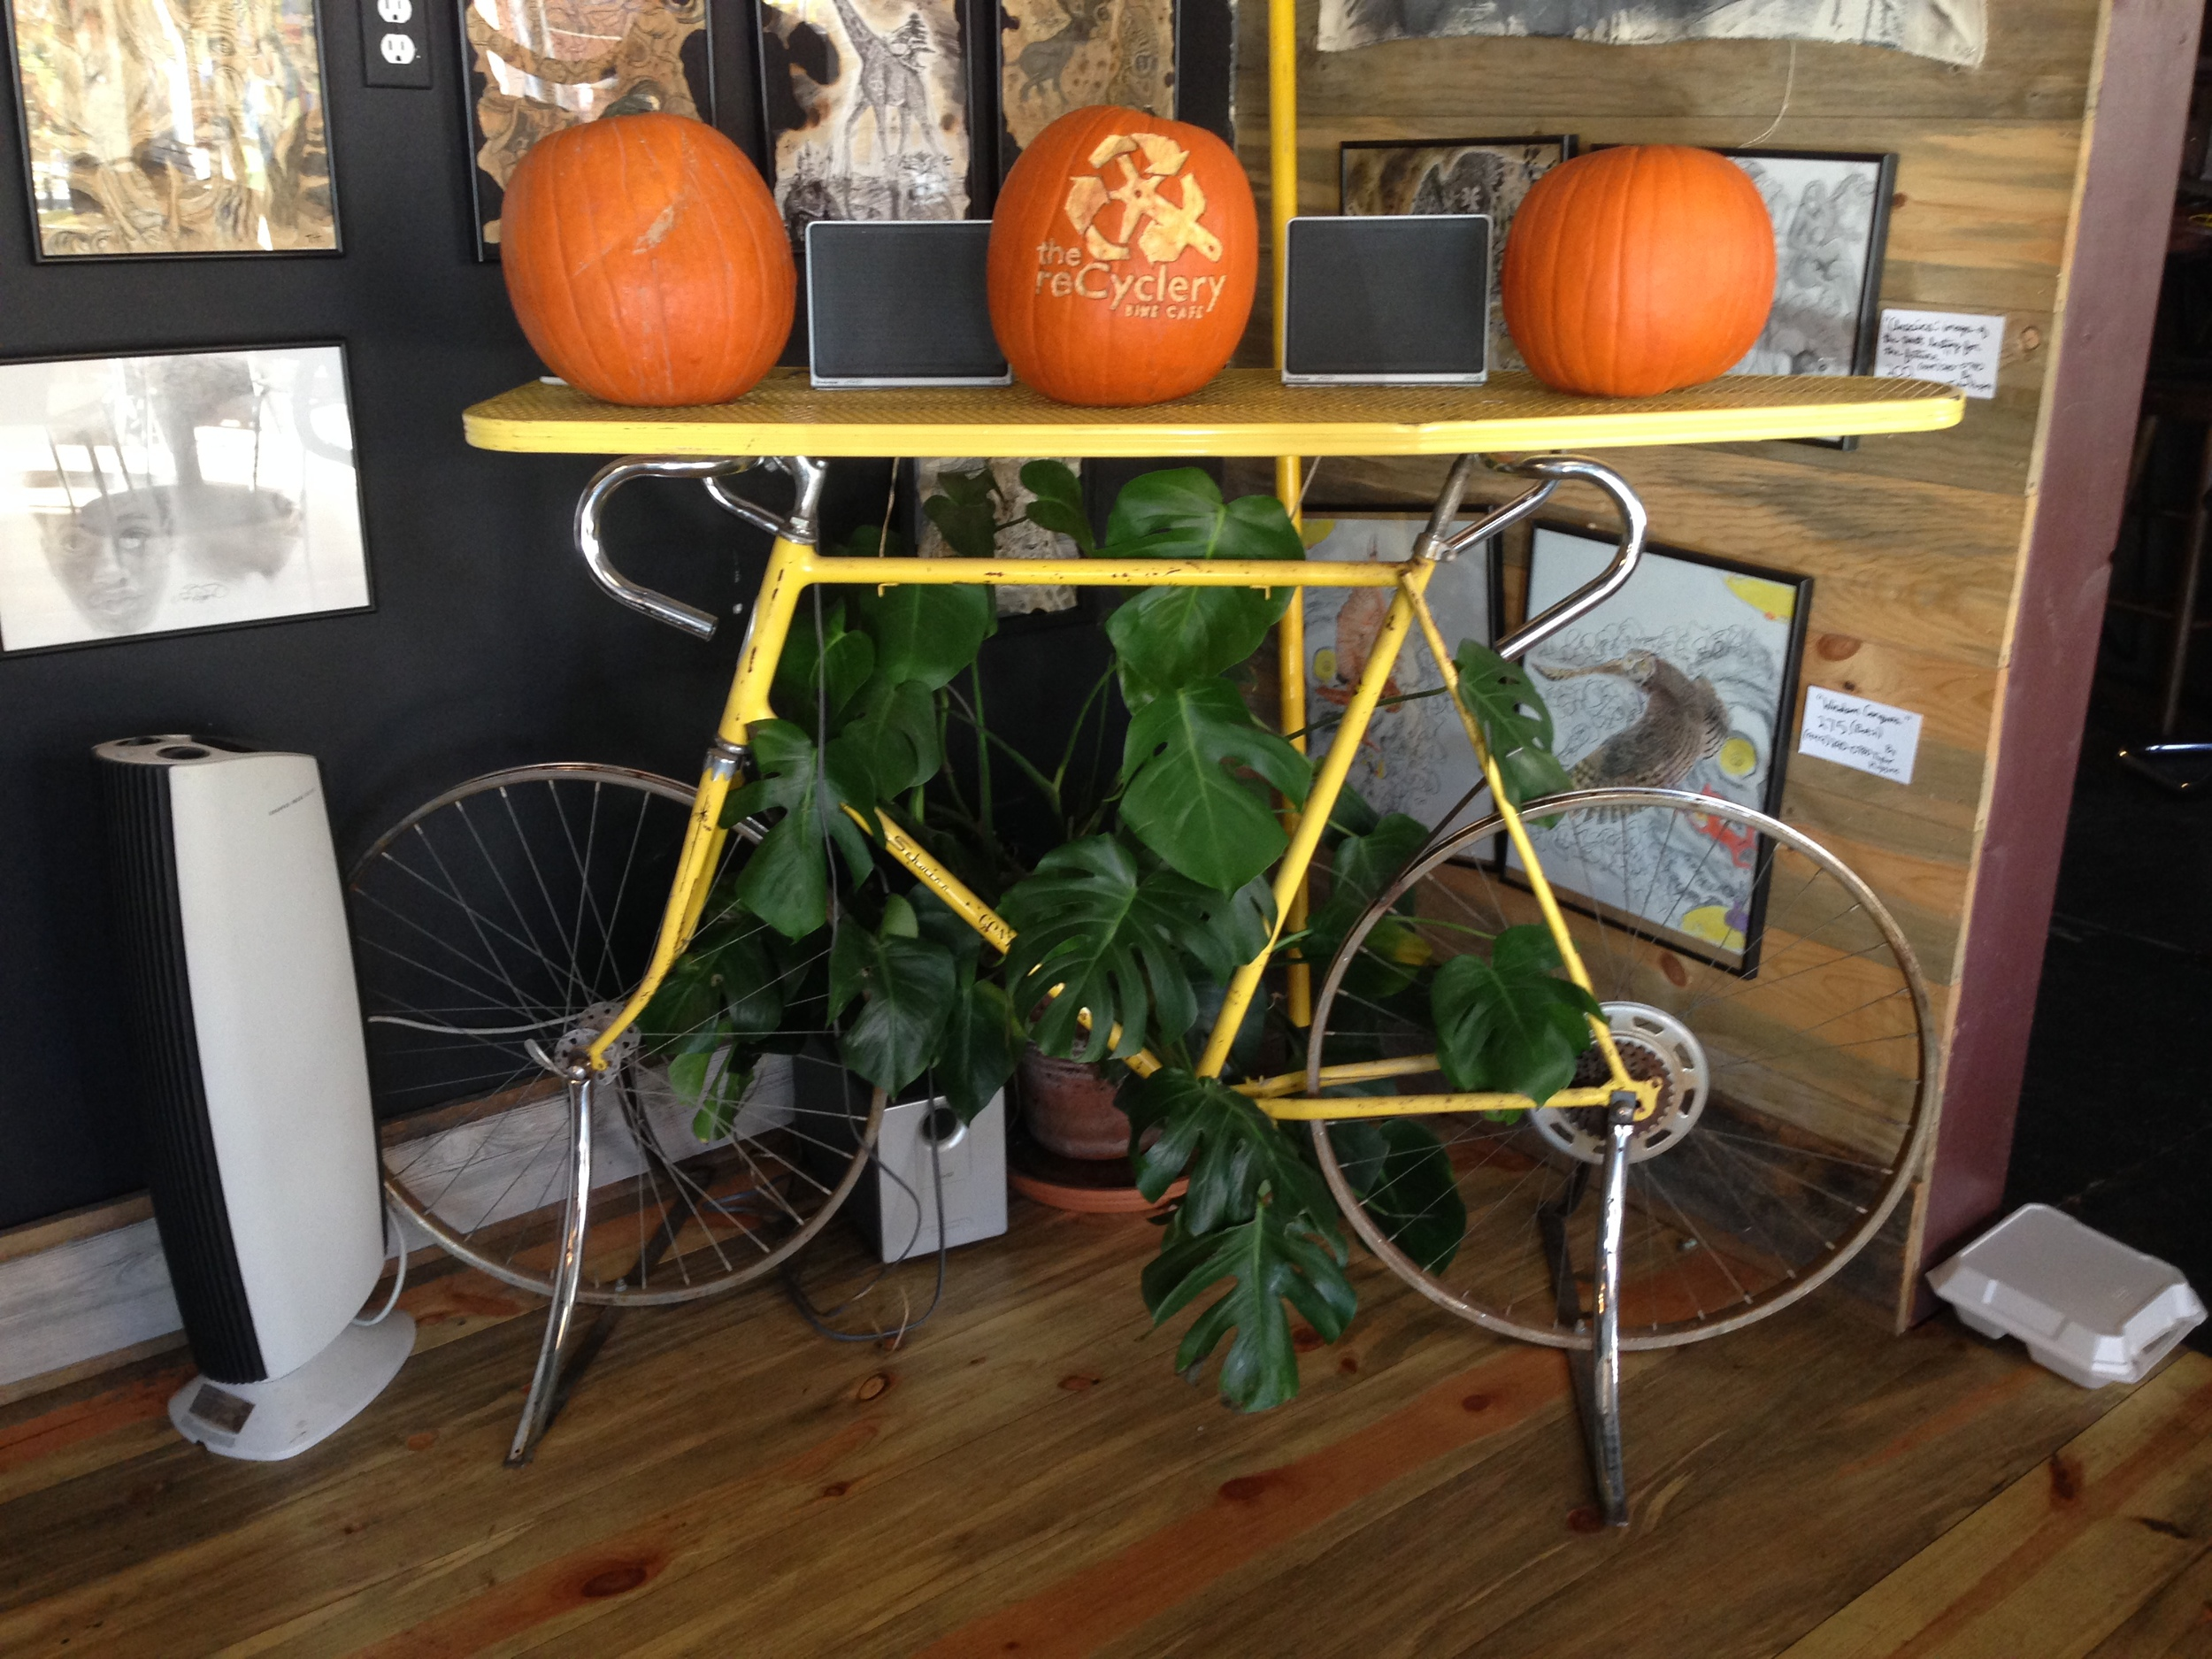 Seeing yellow bicycles  in my world around me reminds me just how NOT wrong I am.